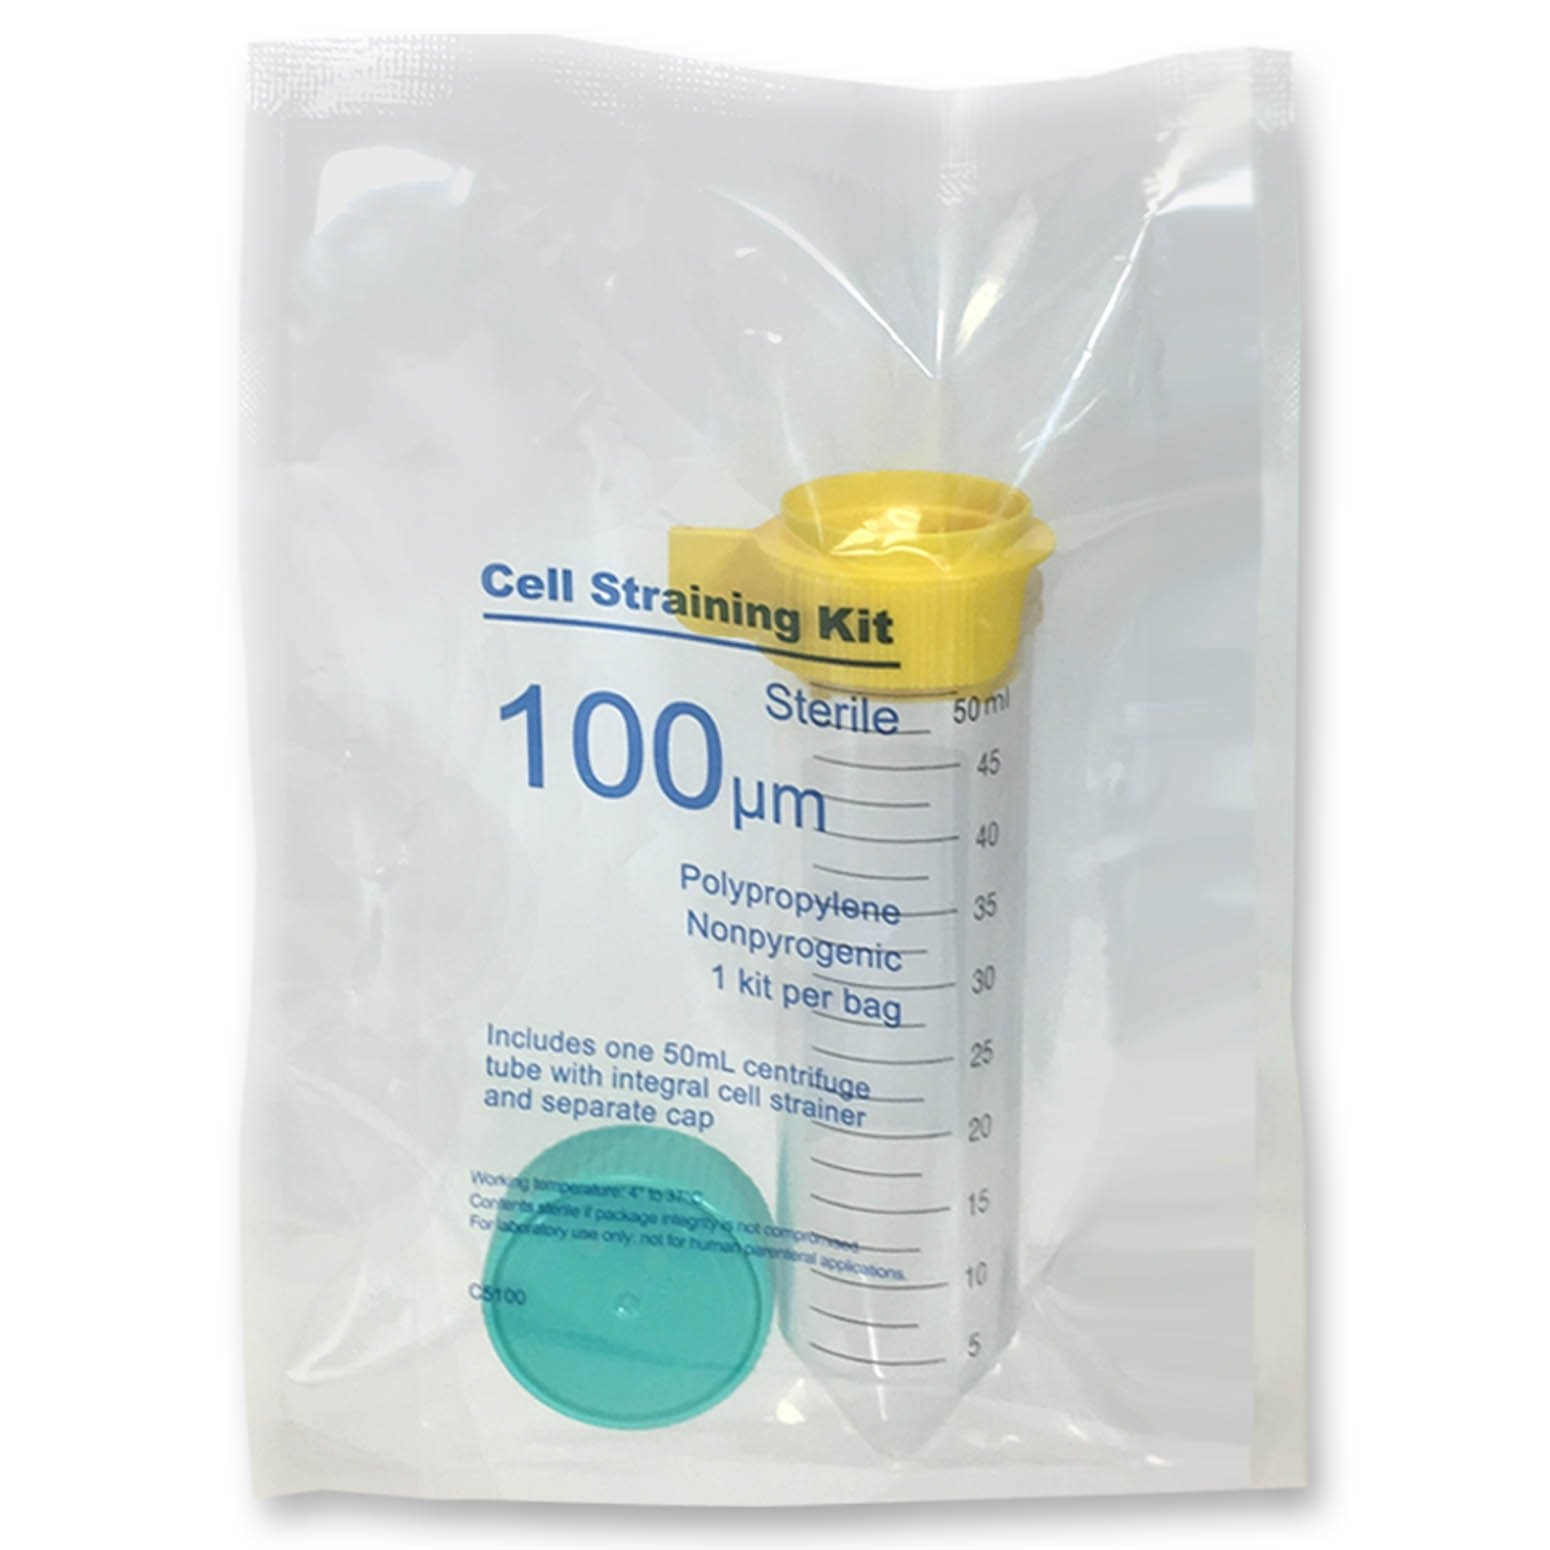 ReadyStrain 100um Cell Straining Kit